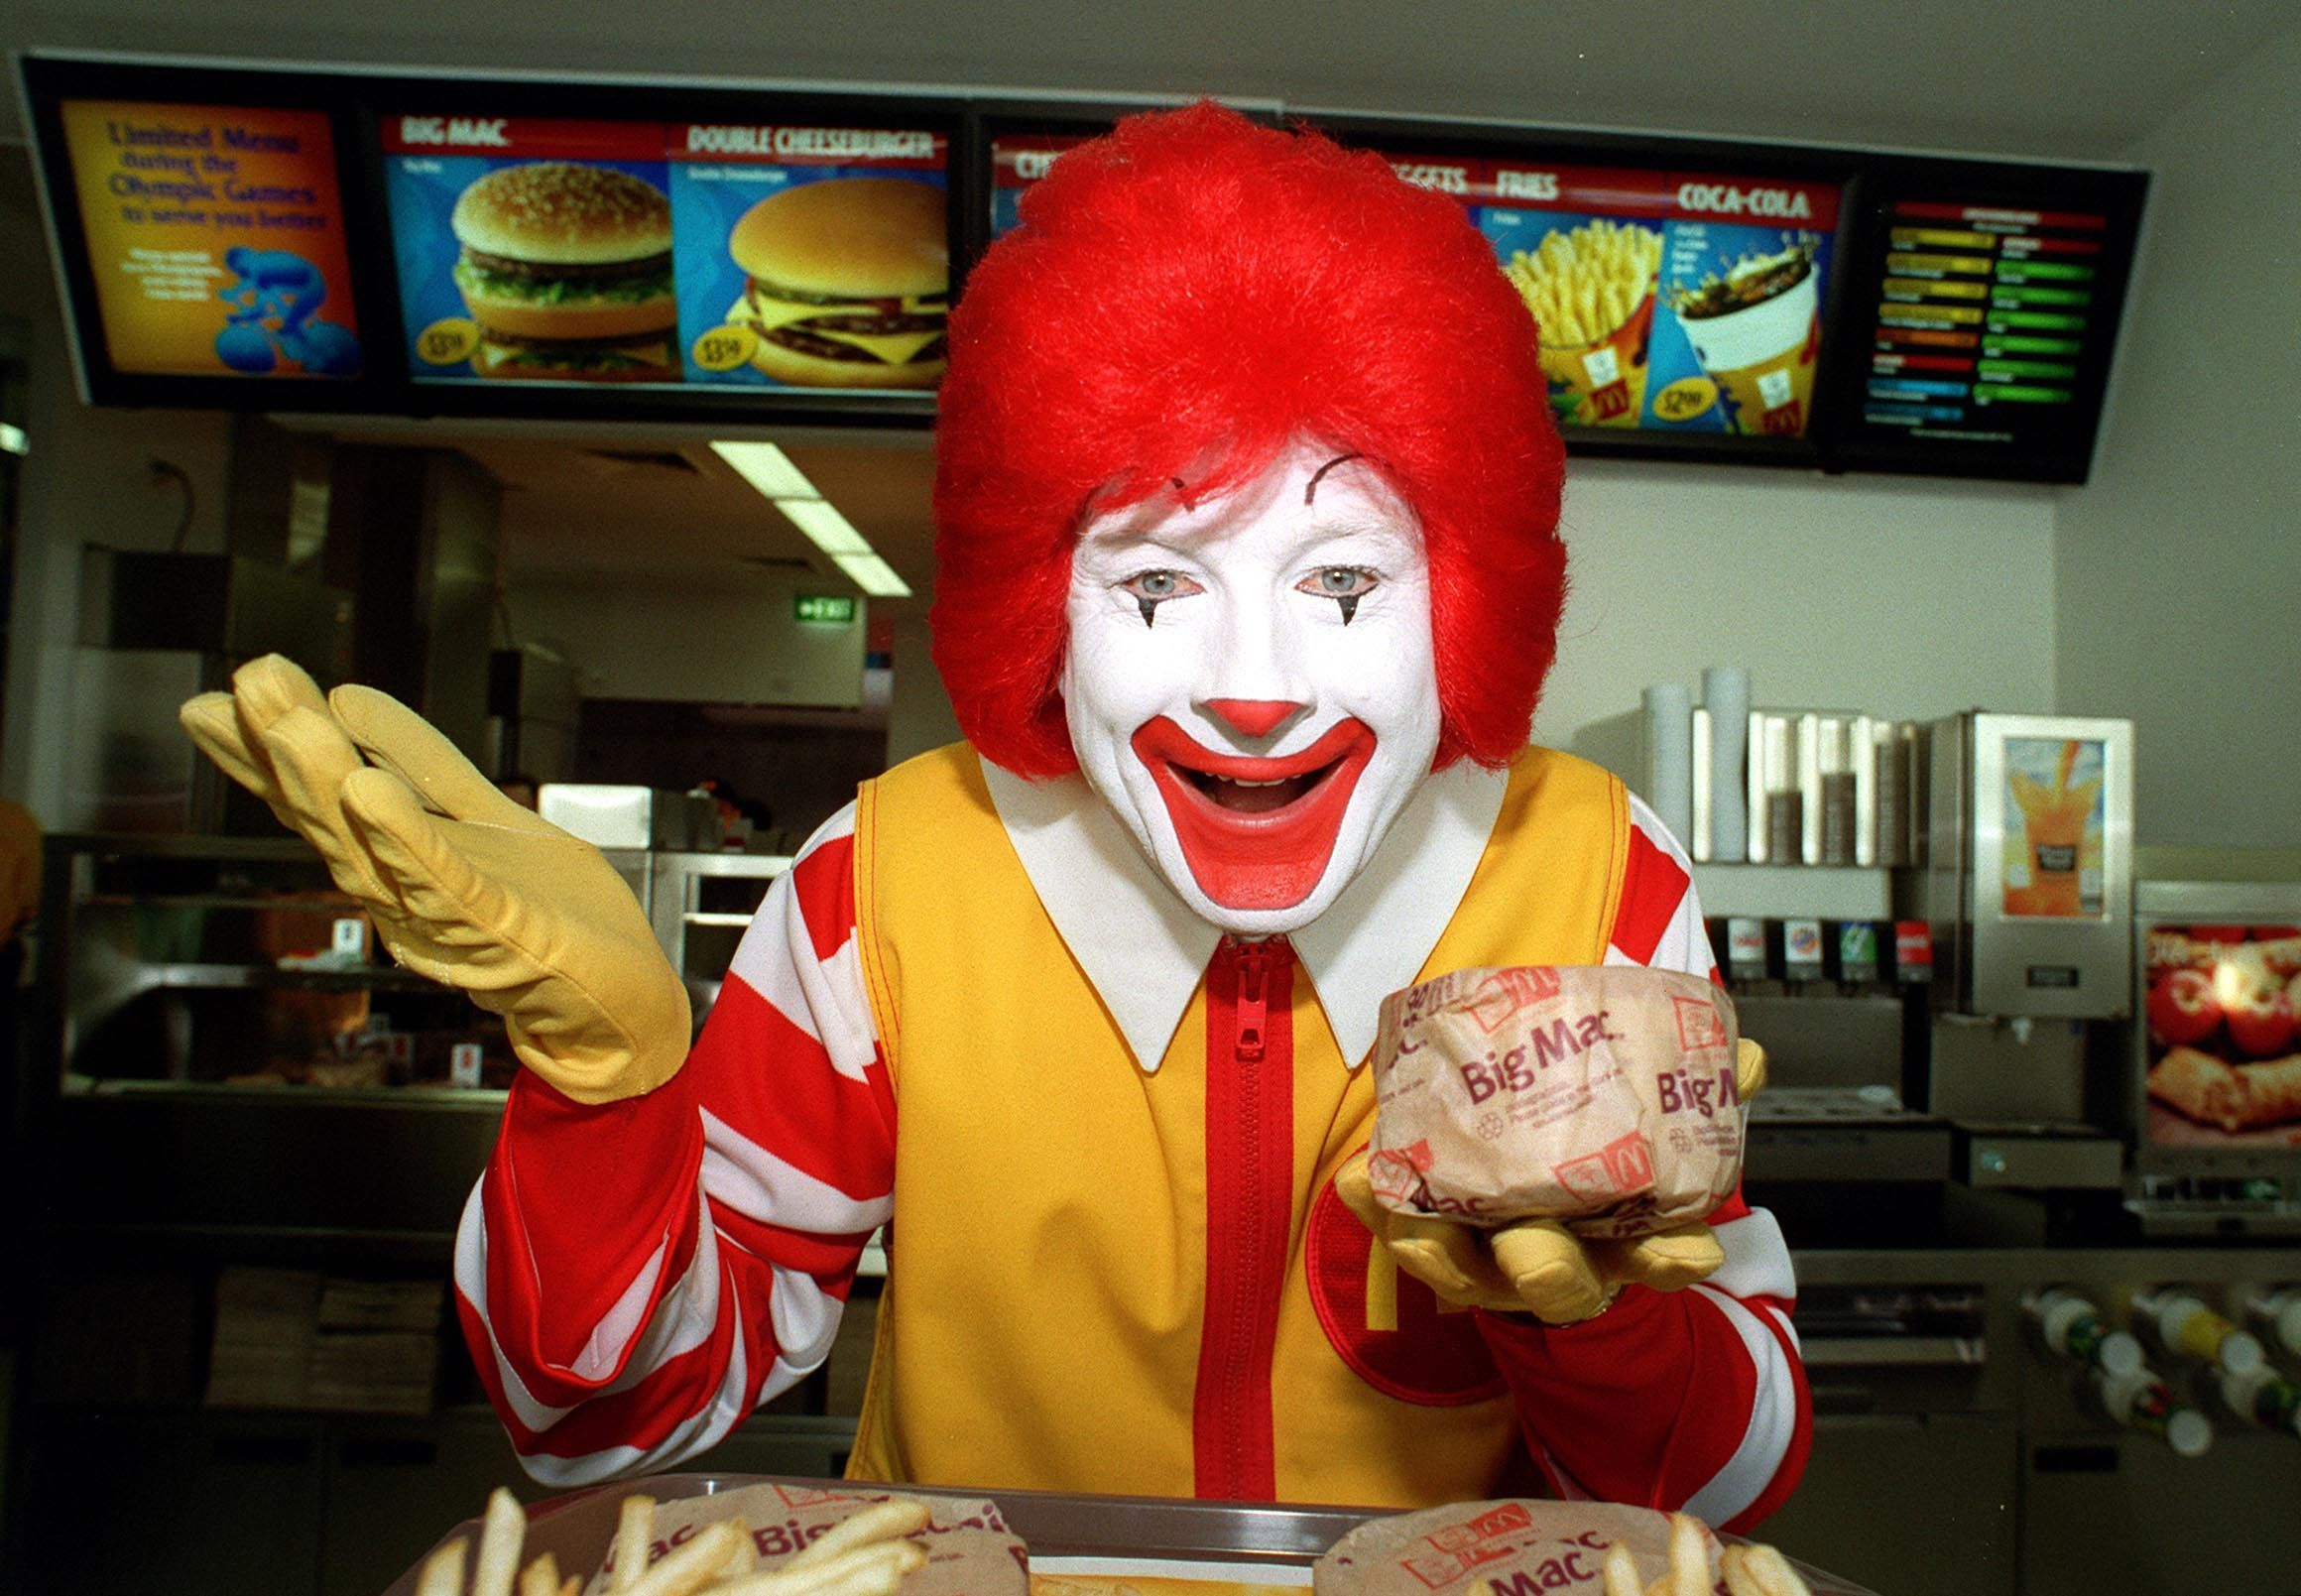 15 Reasons Why People Should Never Eat At McDonald's Ever Again